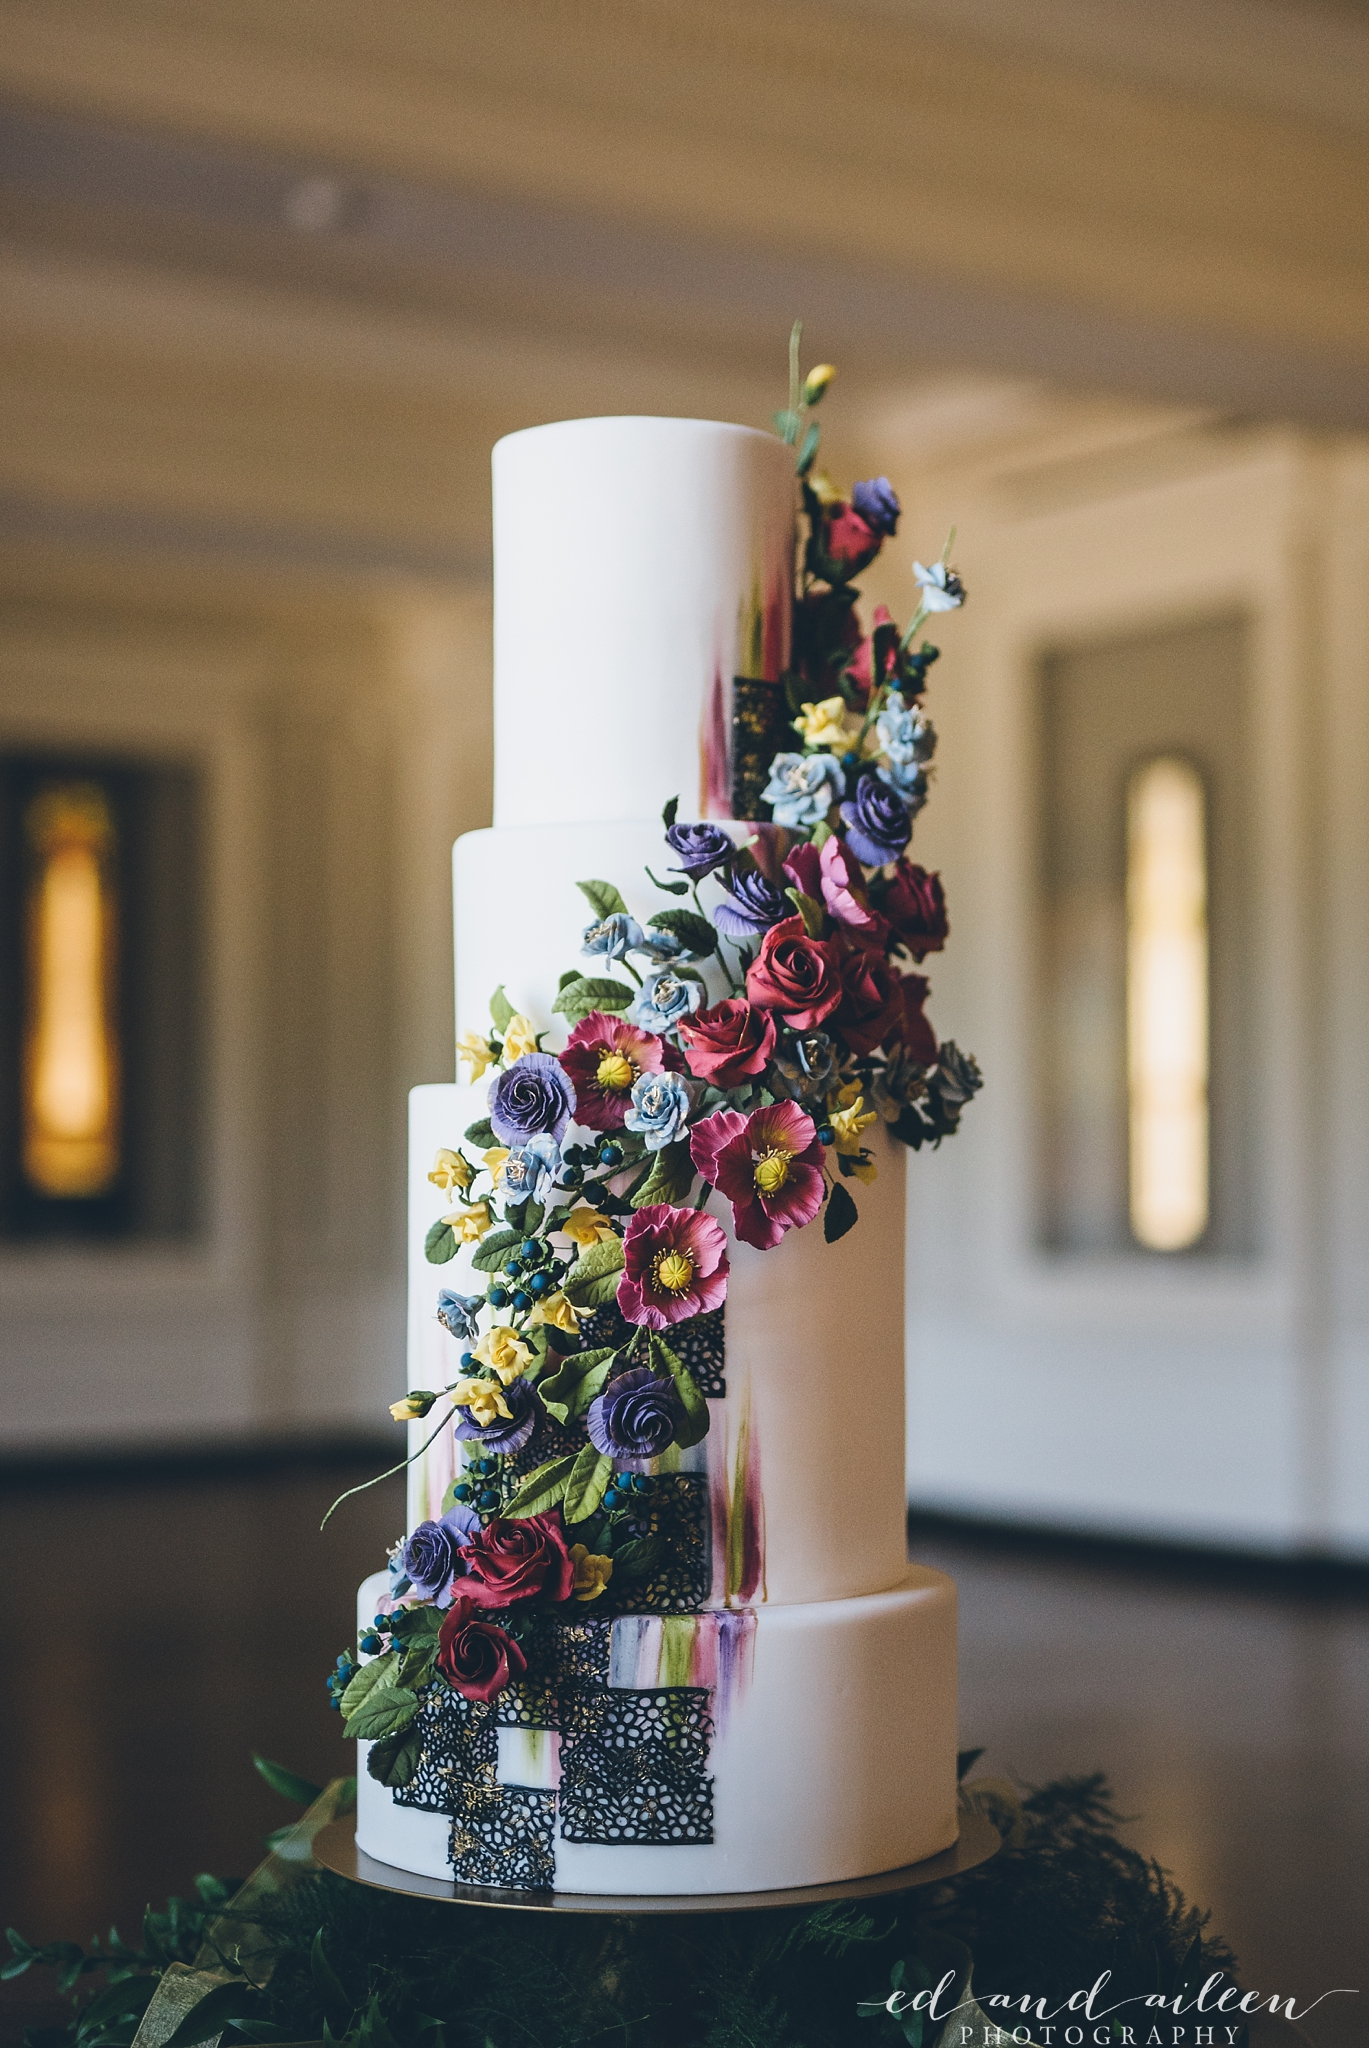 4 Tiered Floral Wedding Cake Chicago Wedding Ed and Aileen Photography